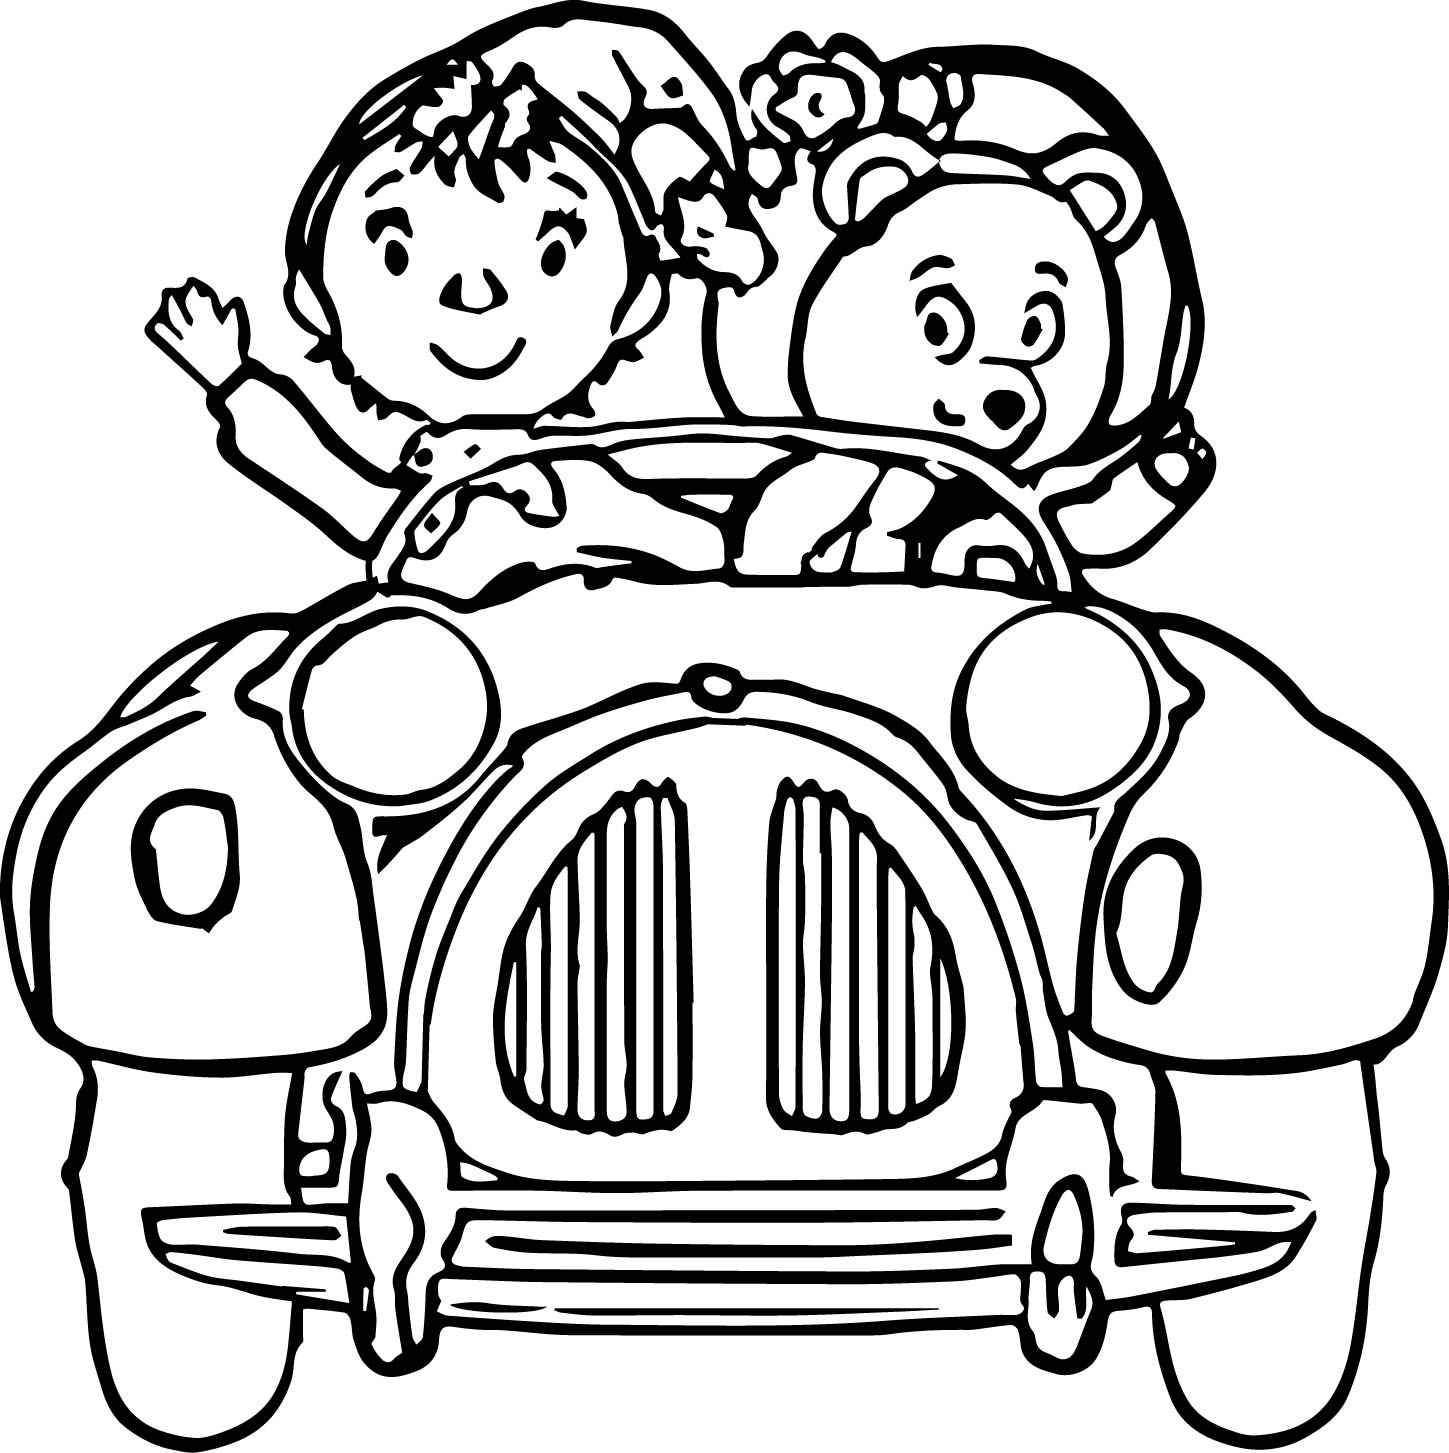 Noddy Cartoon Coloring Pages